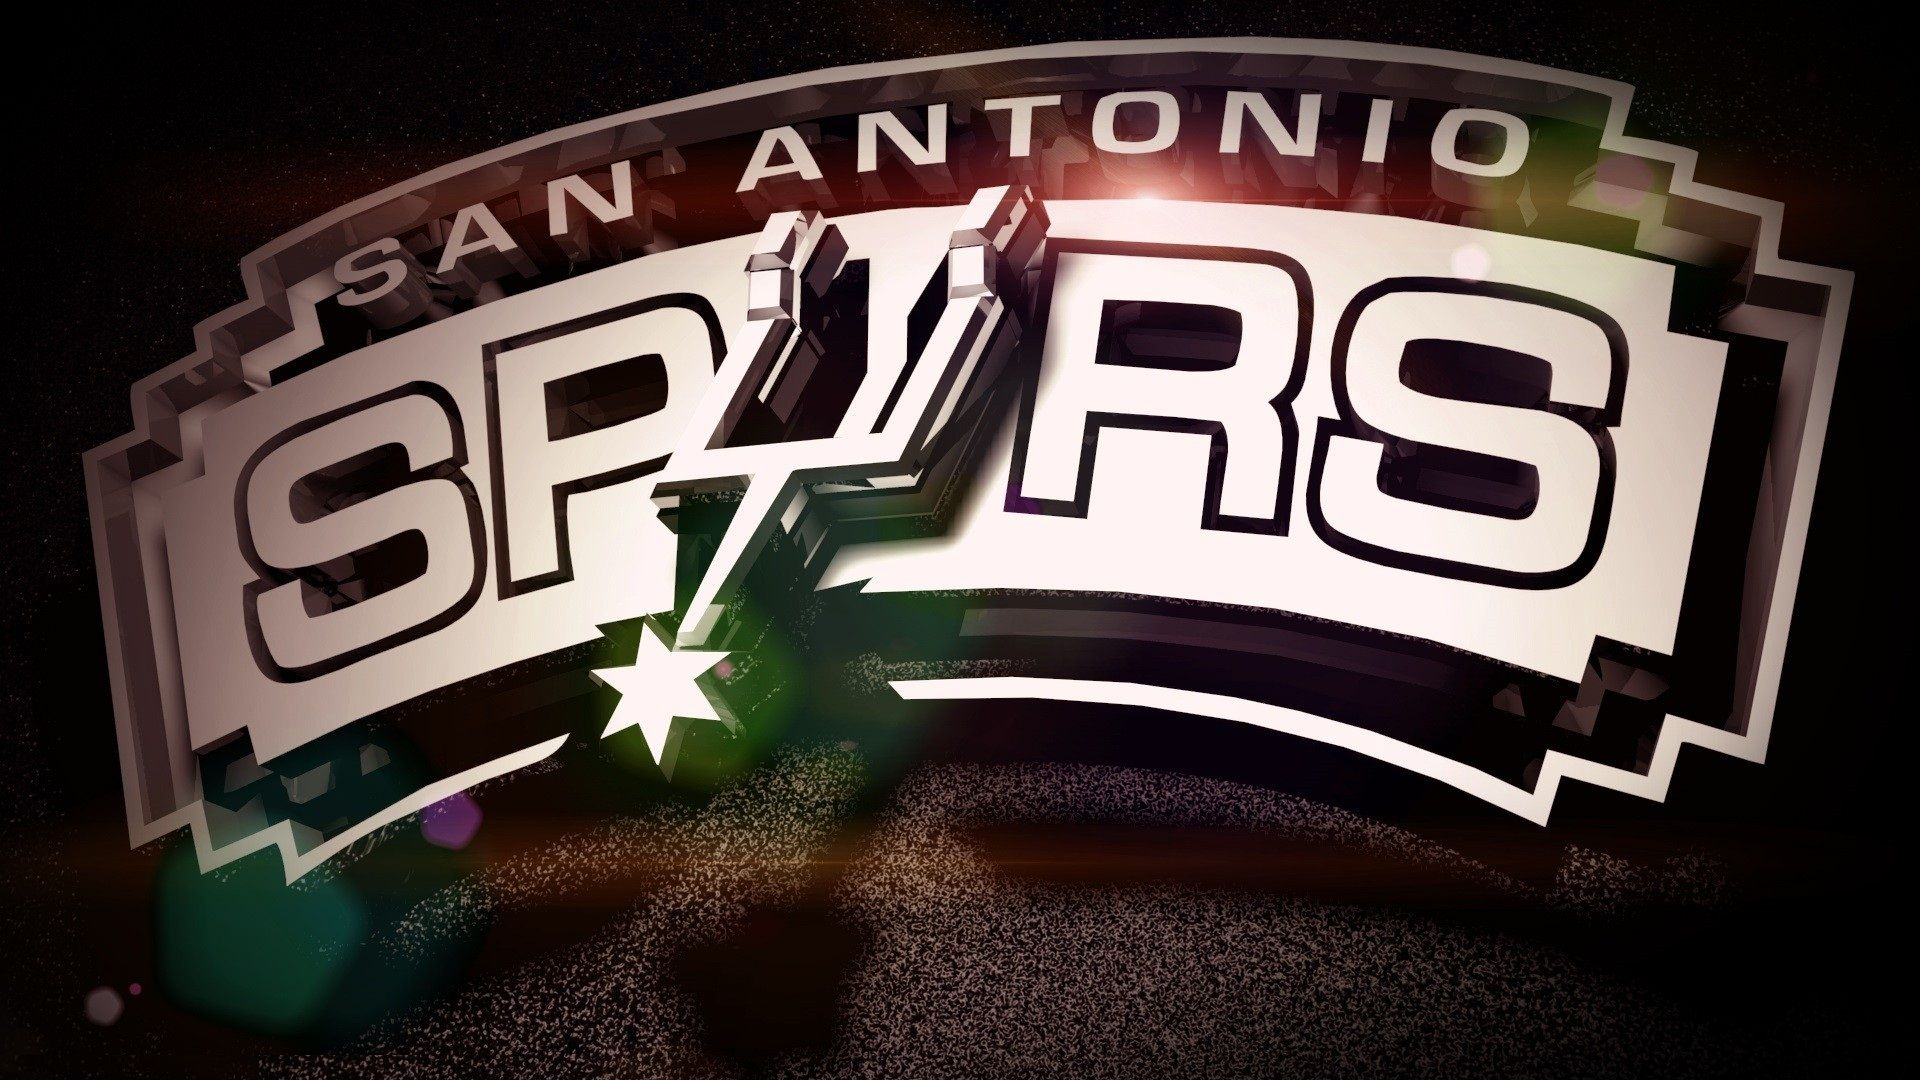 San Antonio Spurs Wallpaper HD | Best Basketball Wallpapers